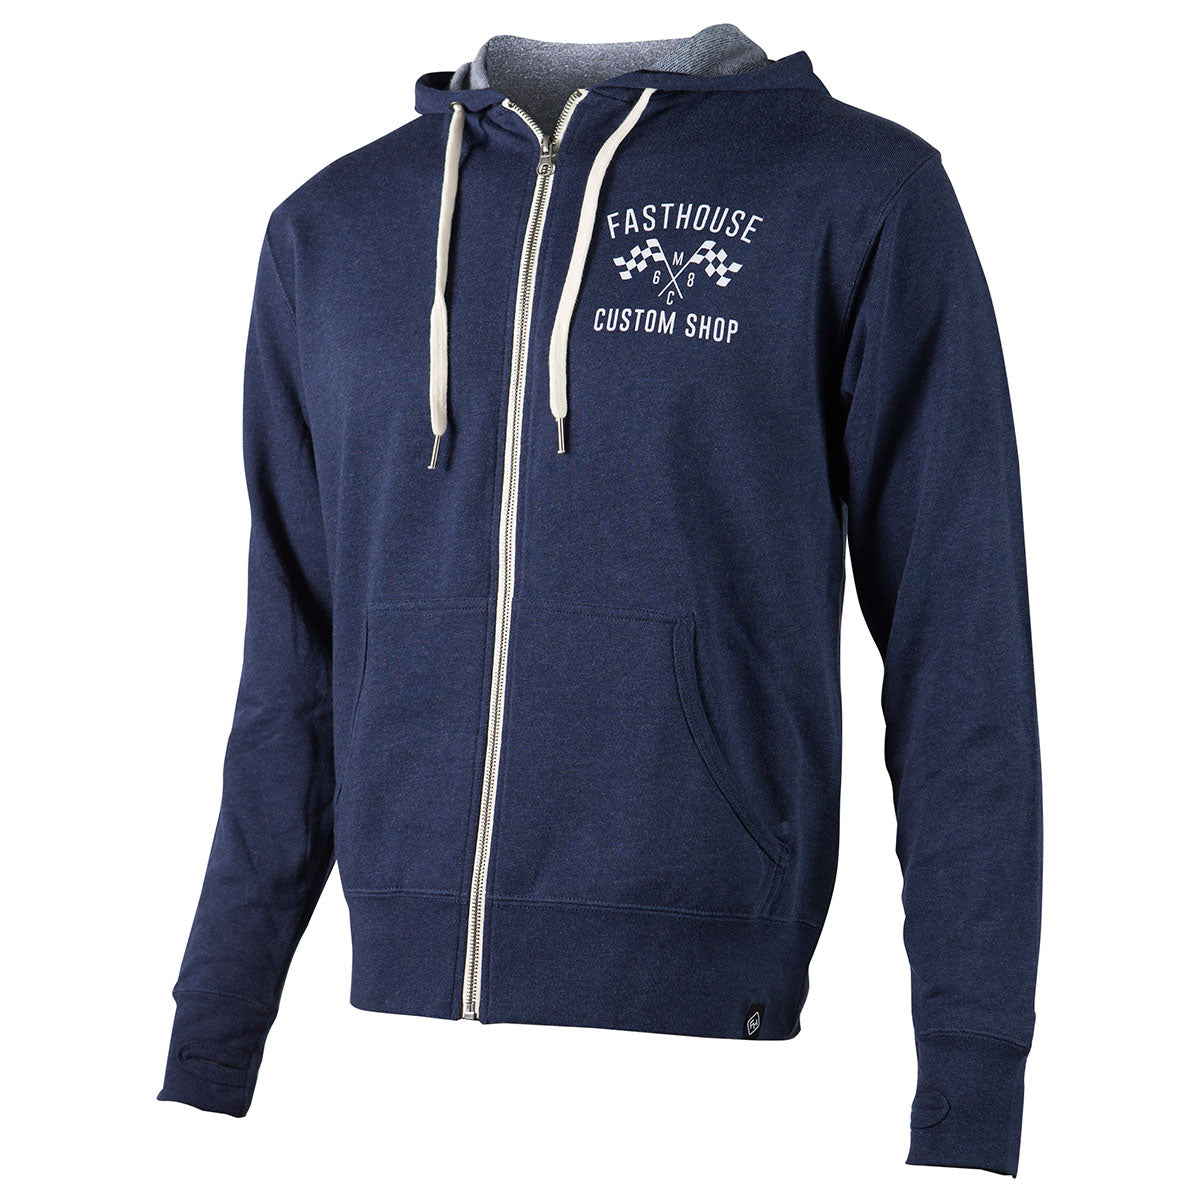 Fasthouse - Custom Shop Zip Up Hoodie - Navy